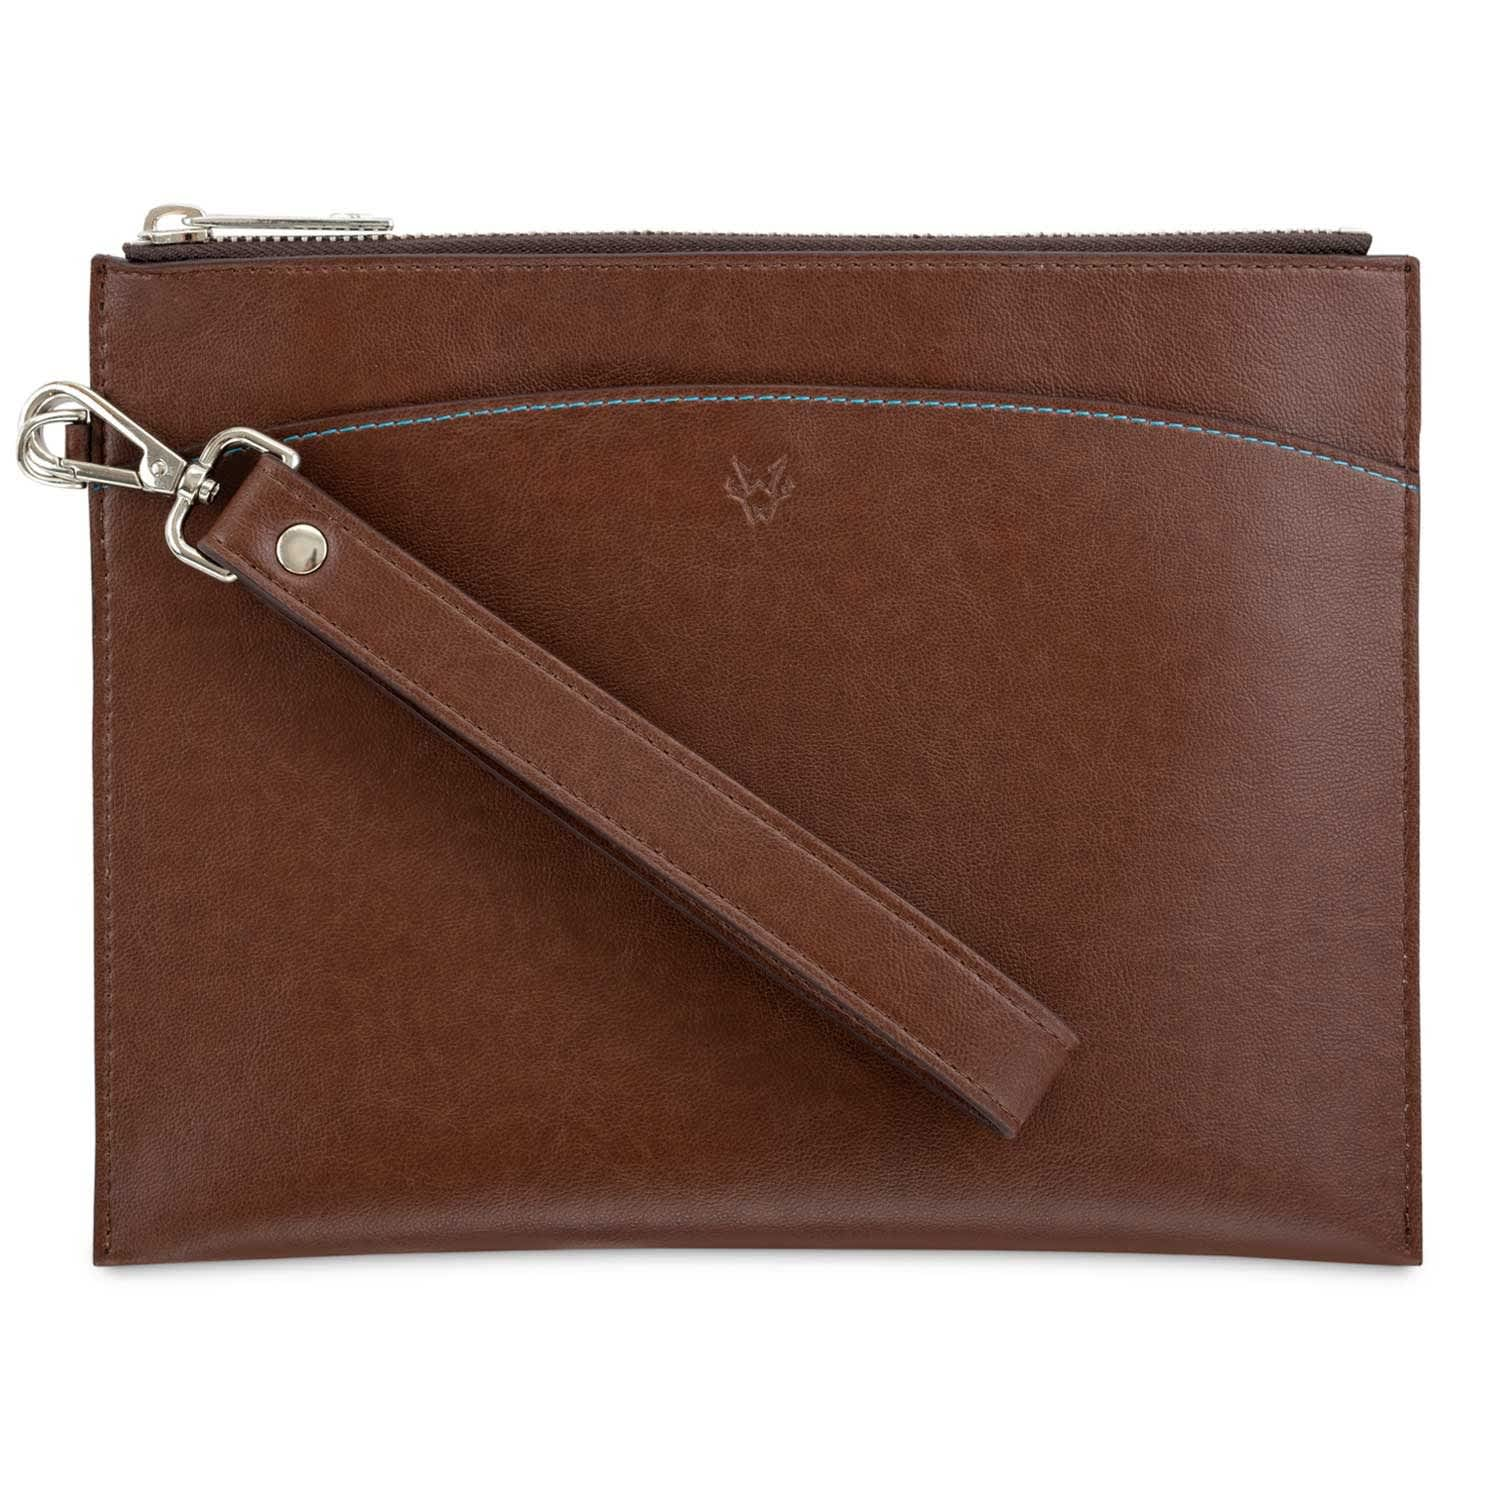 authentic quality famous brand new high Clutch With Handle In Oakbark by Watson & Wolfe